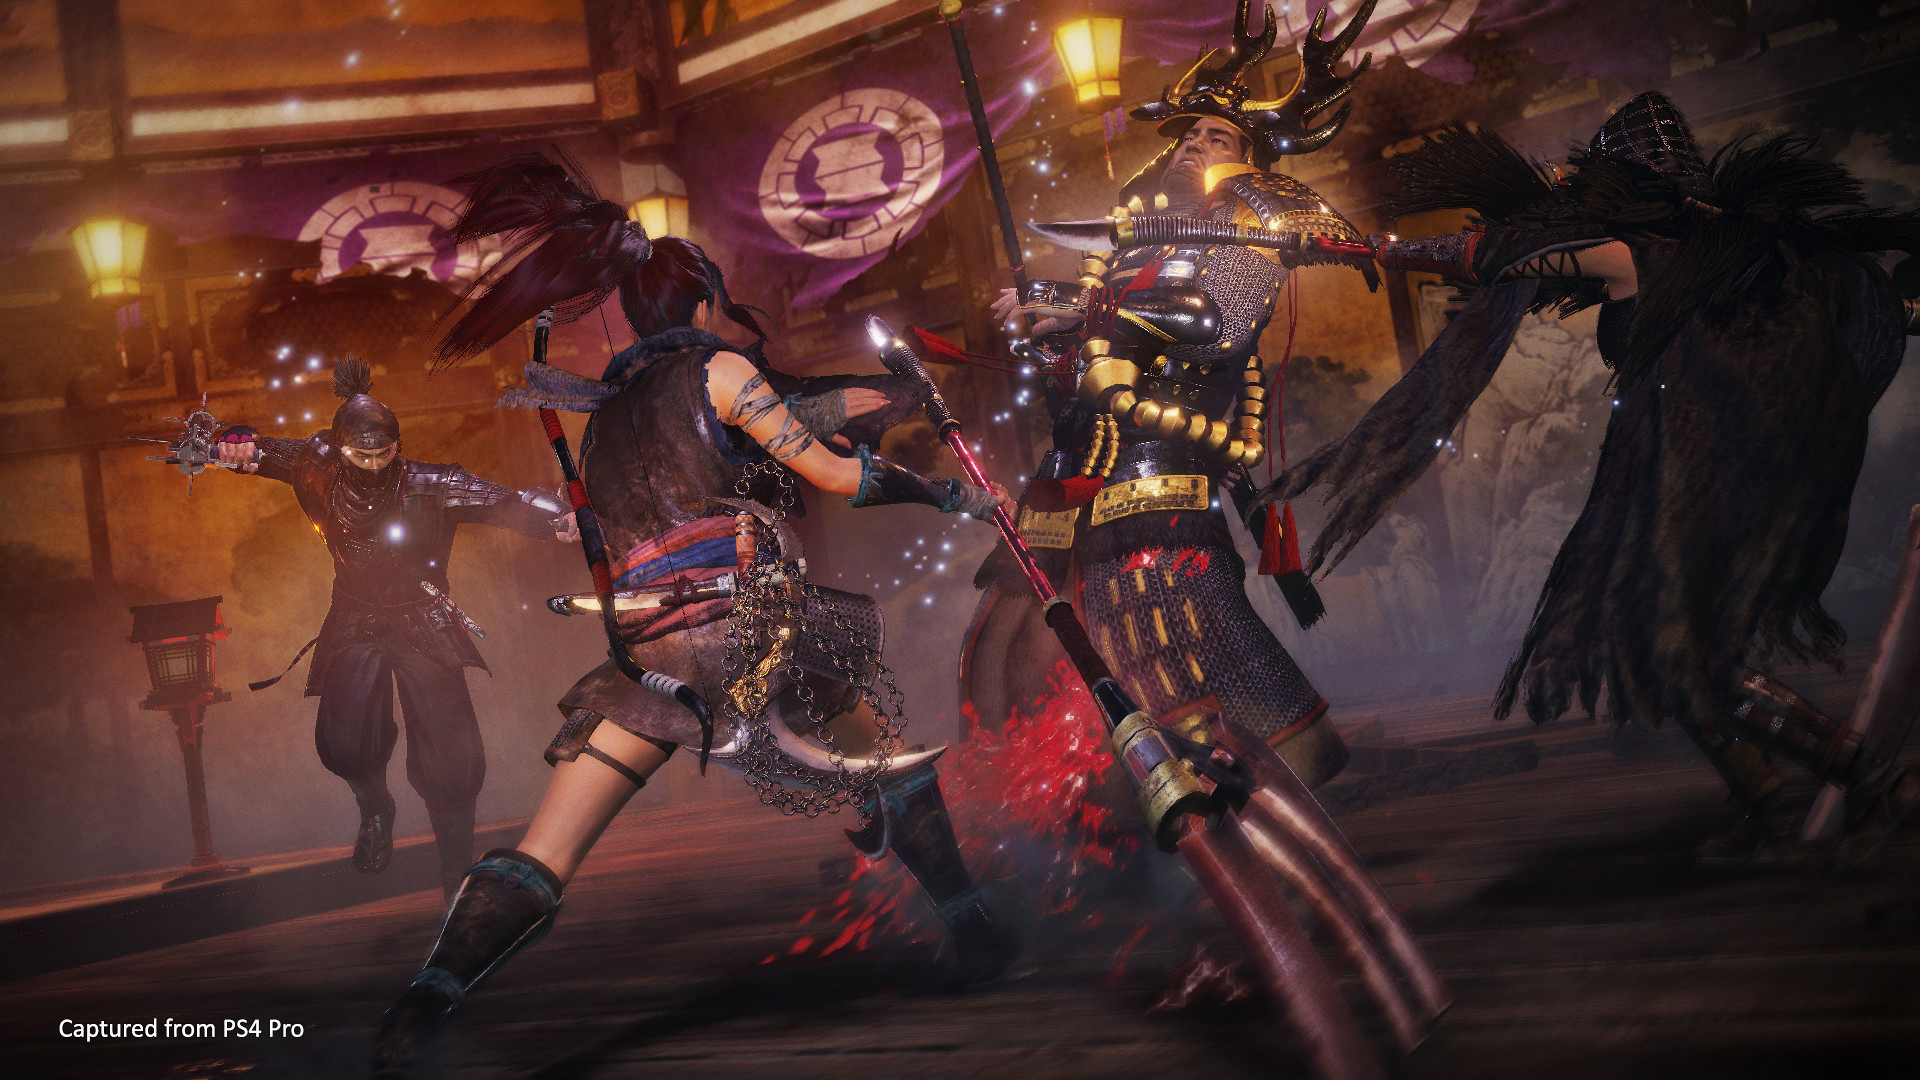 Nioh 2's first DLC is days away, so here's a look at the new Splitstaff weapon screenshot